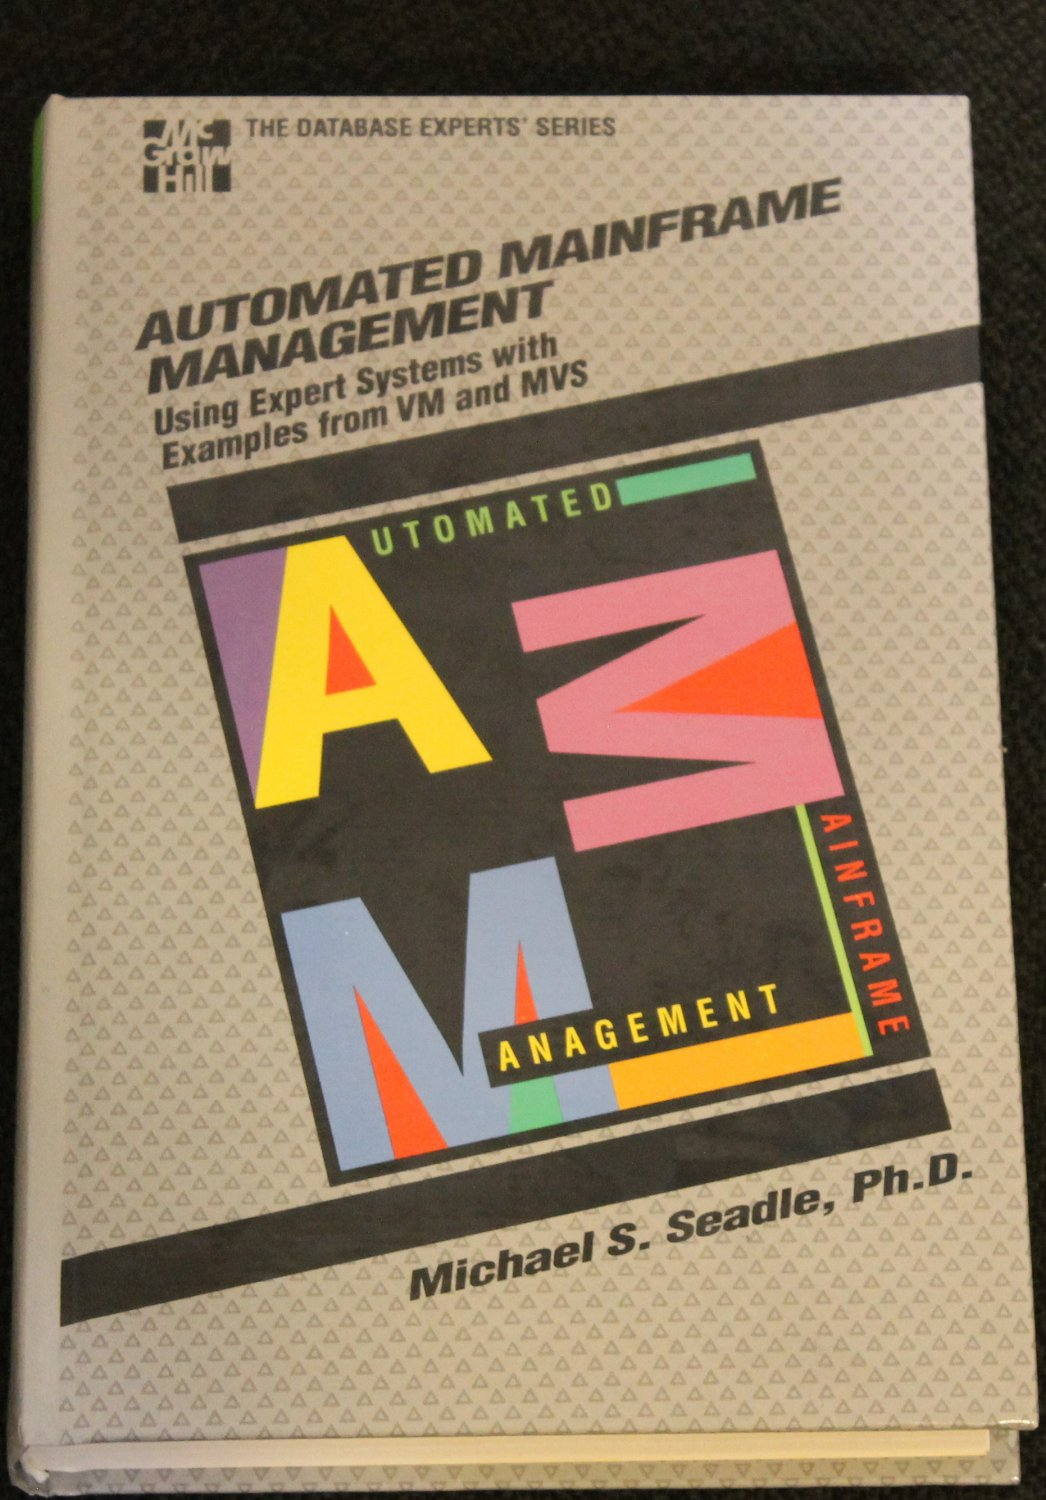 Automated Mainframe Management